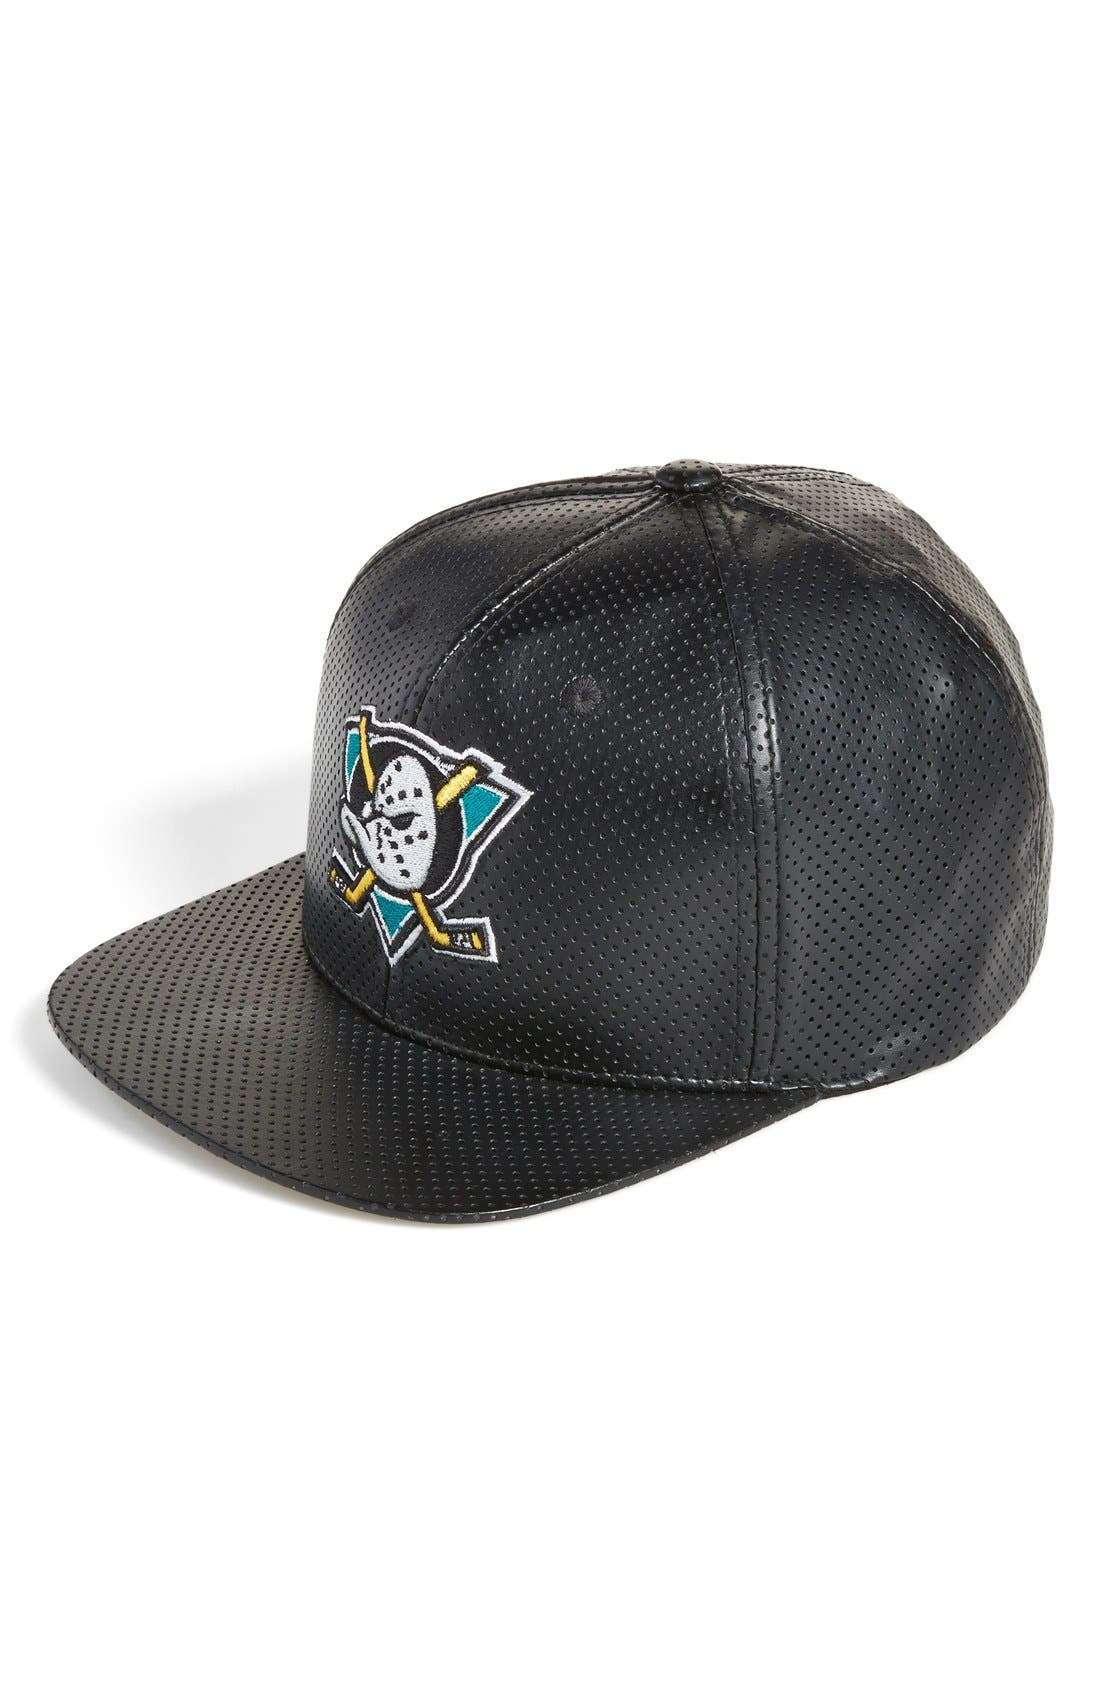 Alternate Image 1 Selected - American Needle 'Anaheim Mighty Ducks' Perforated Faux Leather Snapback Cap